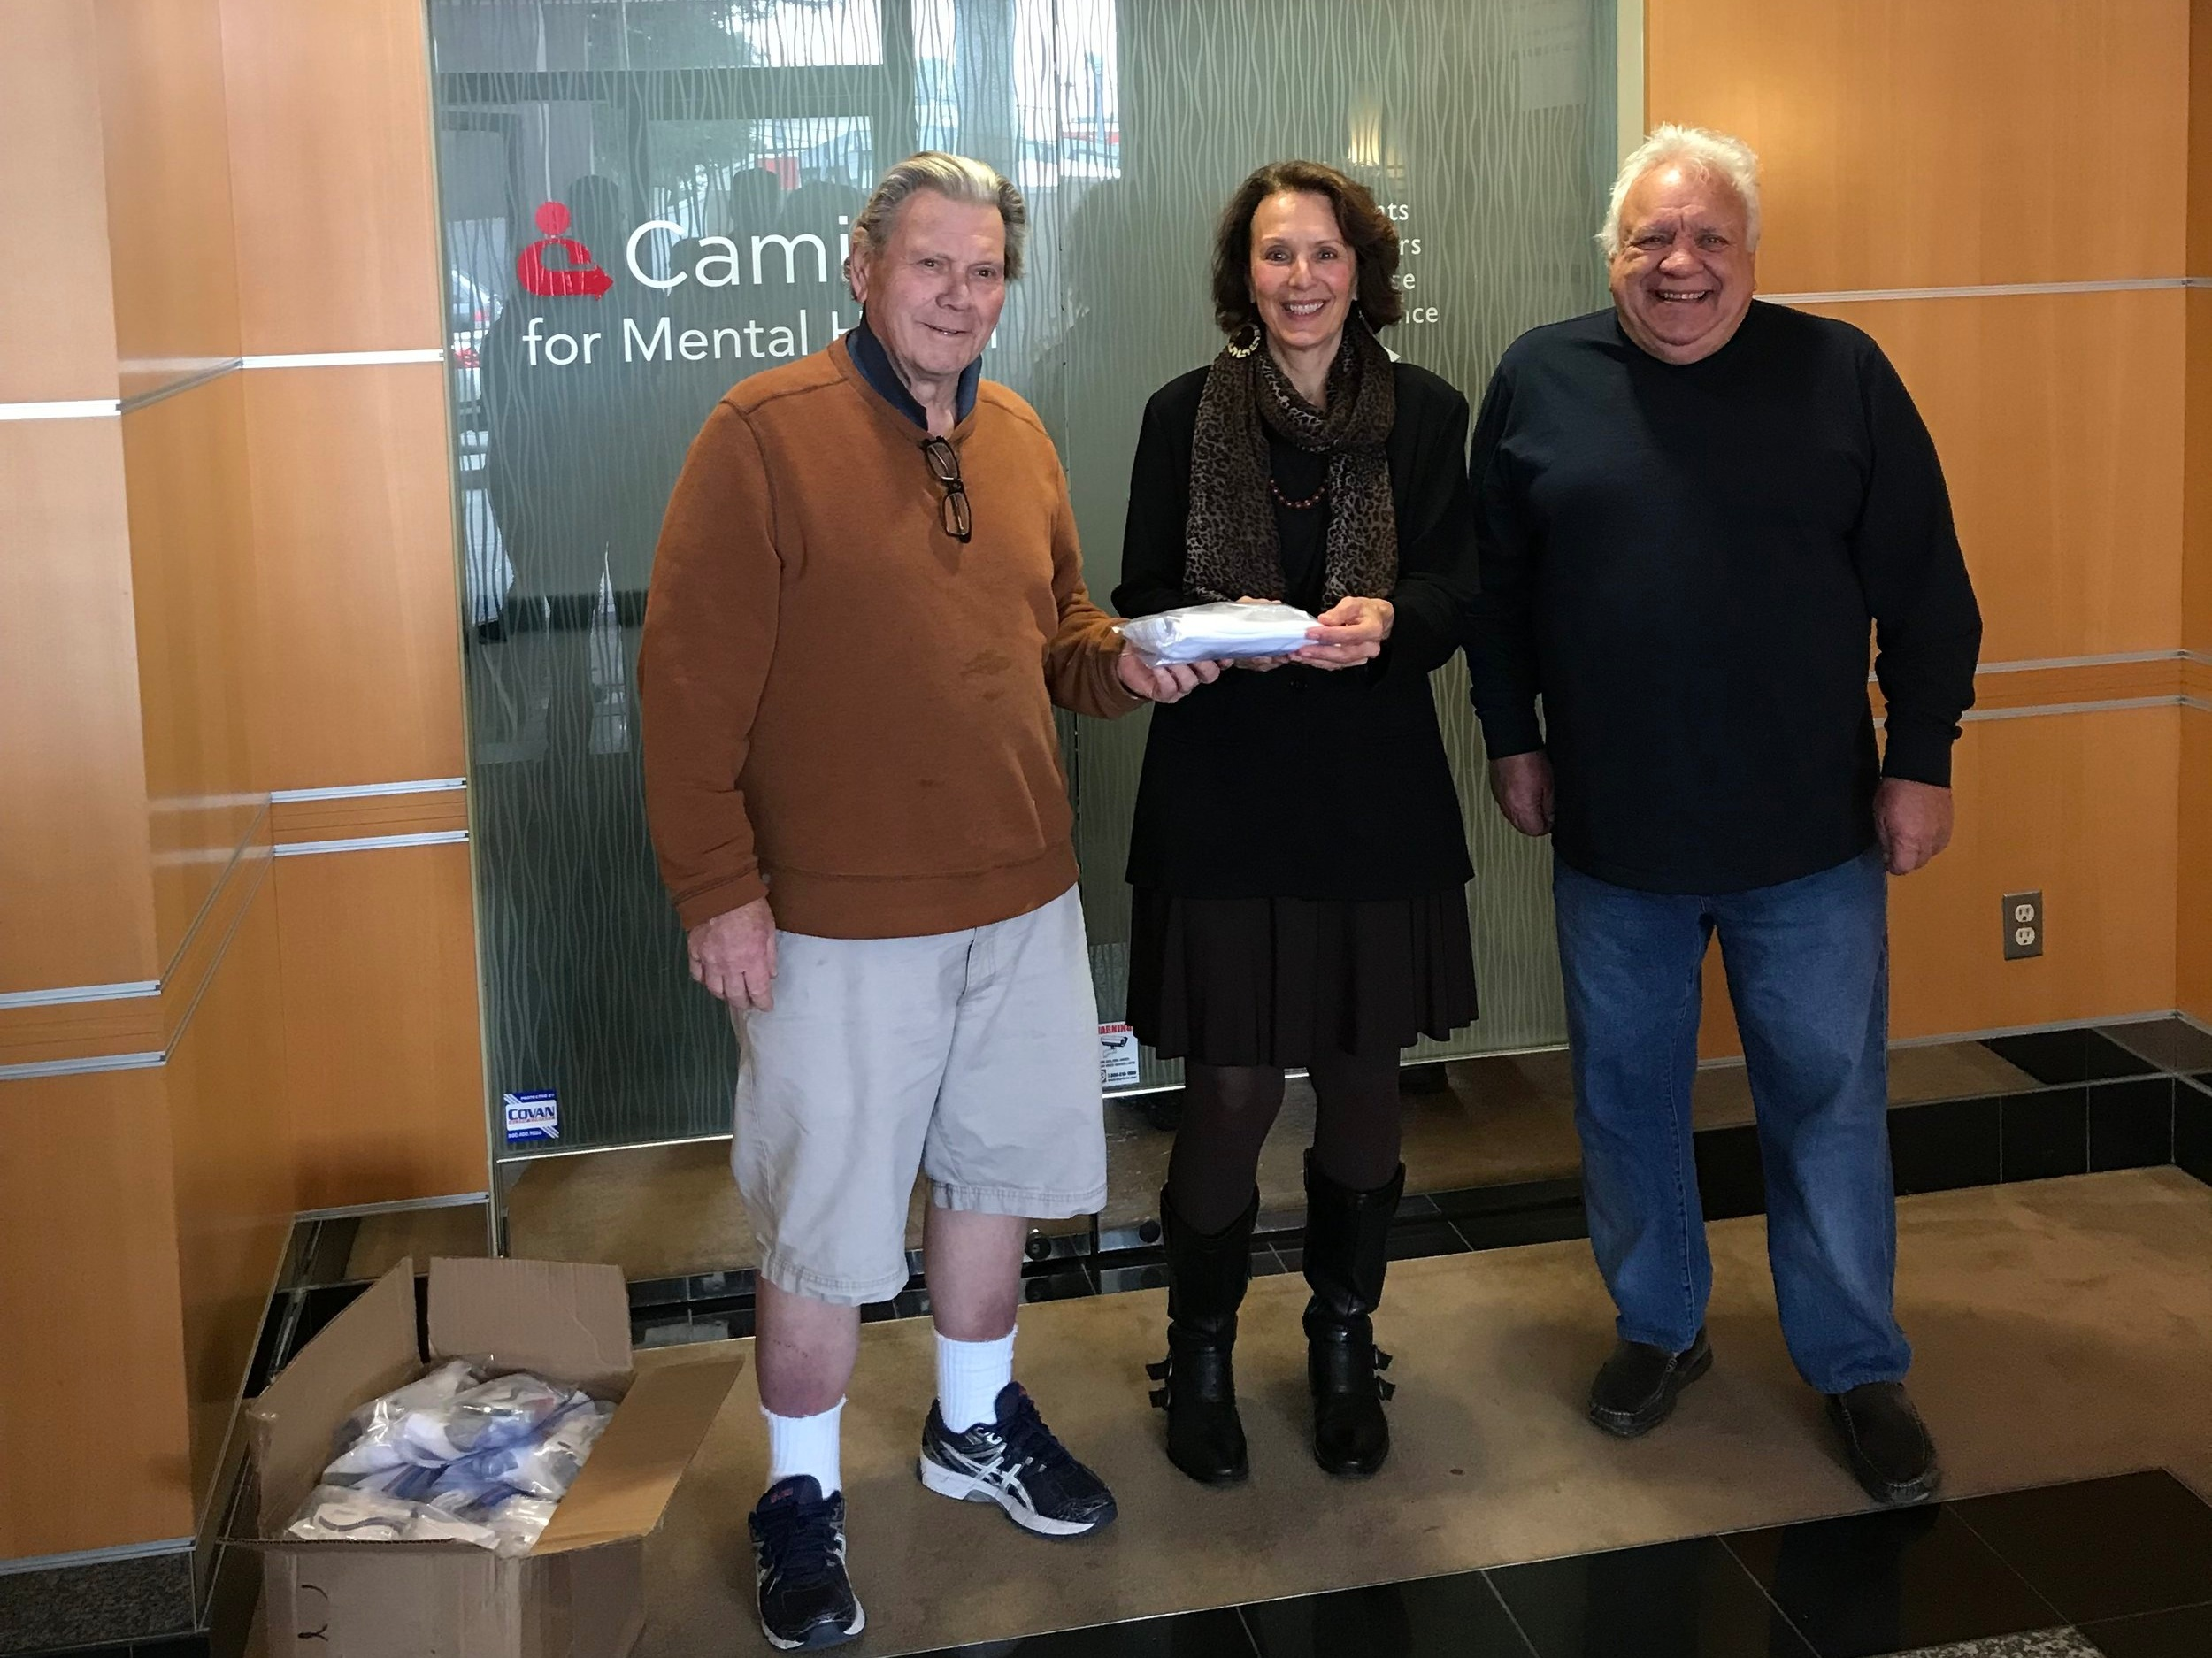 Roger Cutler (left) and Peter Cerri (right) of the Elks of San Mateo Lodge No. 1112 present Harriet Pecot, Caminar Director of Development (center), with 90 toiletry kits for Caminar clients.